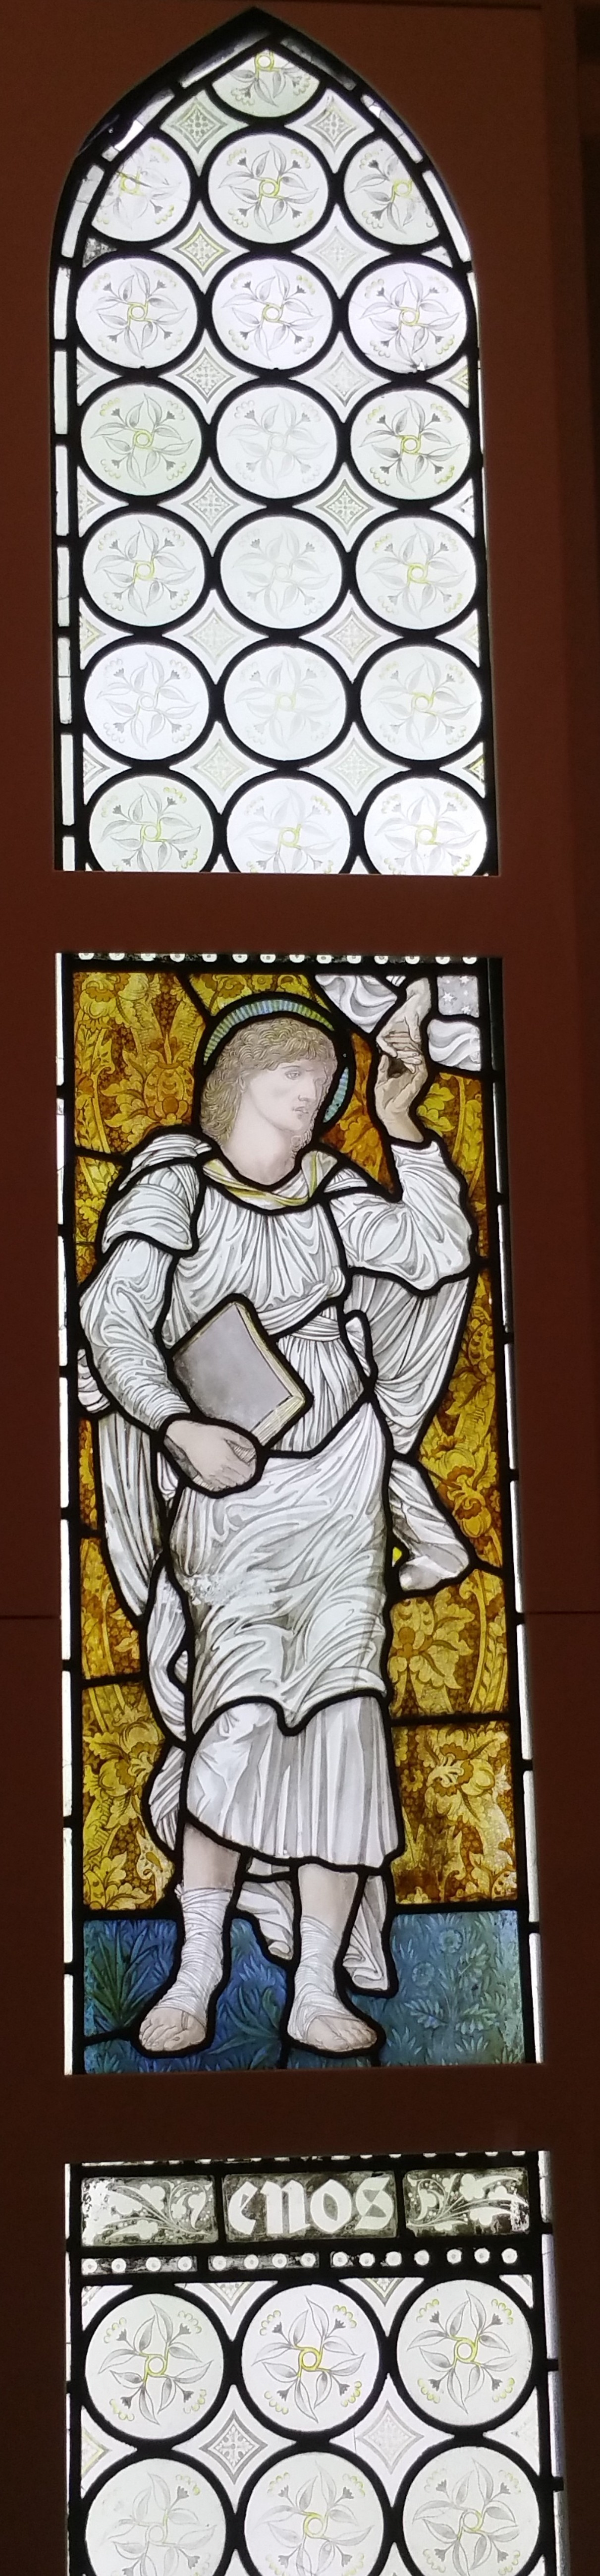 Angel with a book. Stained glass window in the gallery of William Morris in London